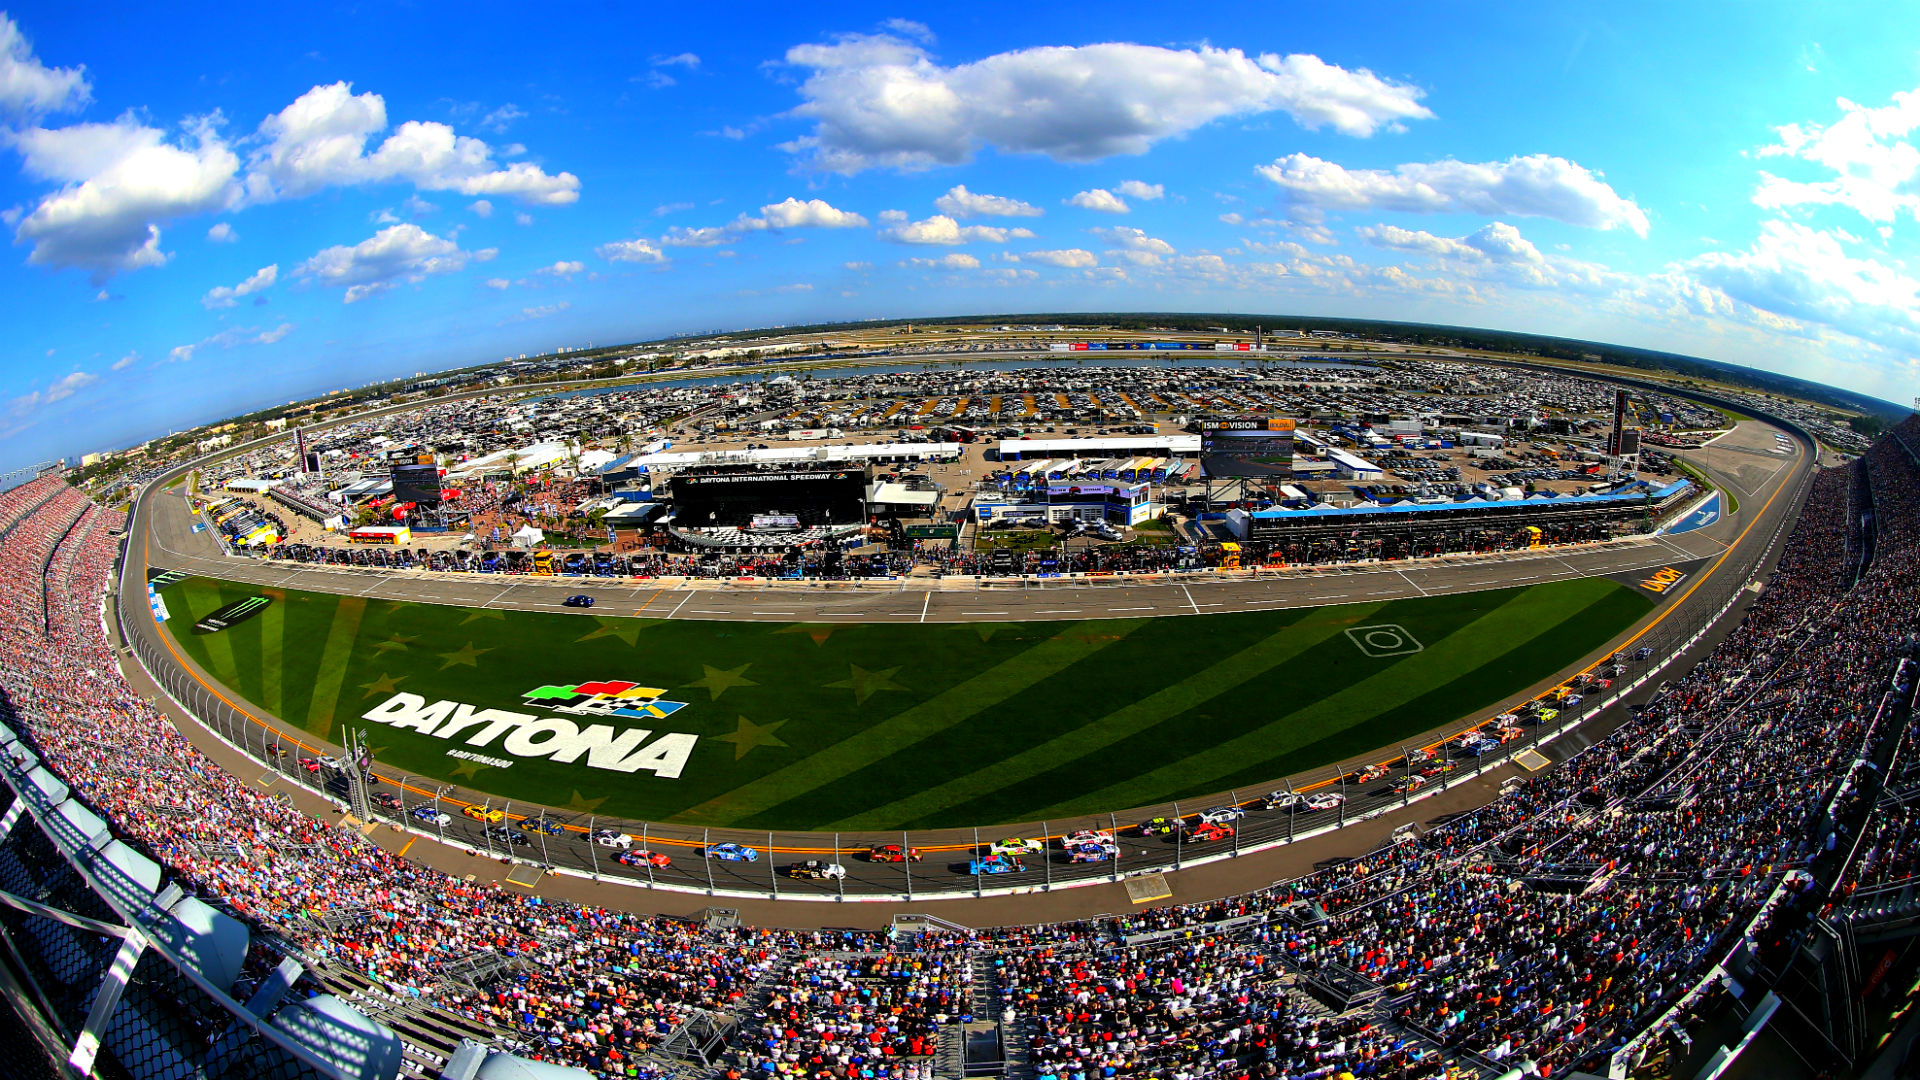 Daytona 500 phases: Explaining the format, stage lengths for 2020 NASCAR season-opener